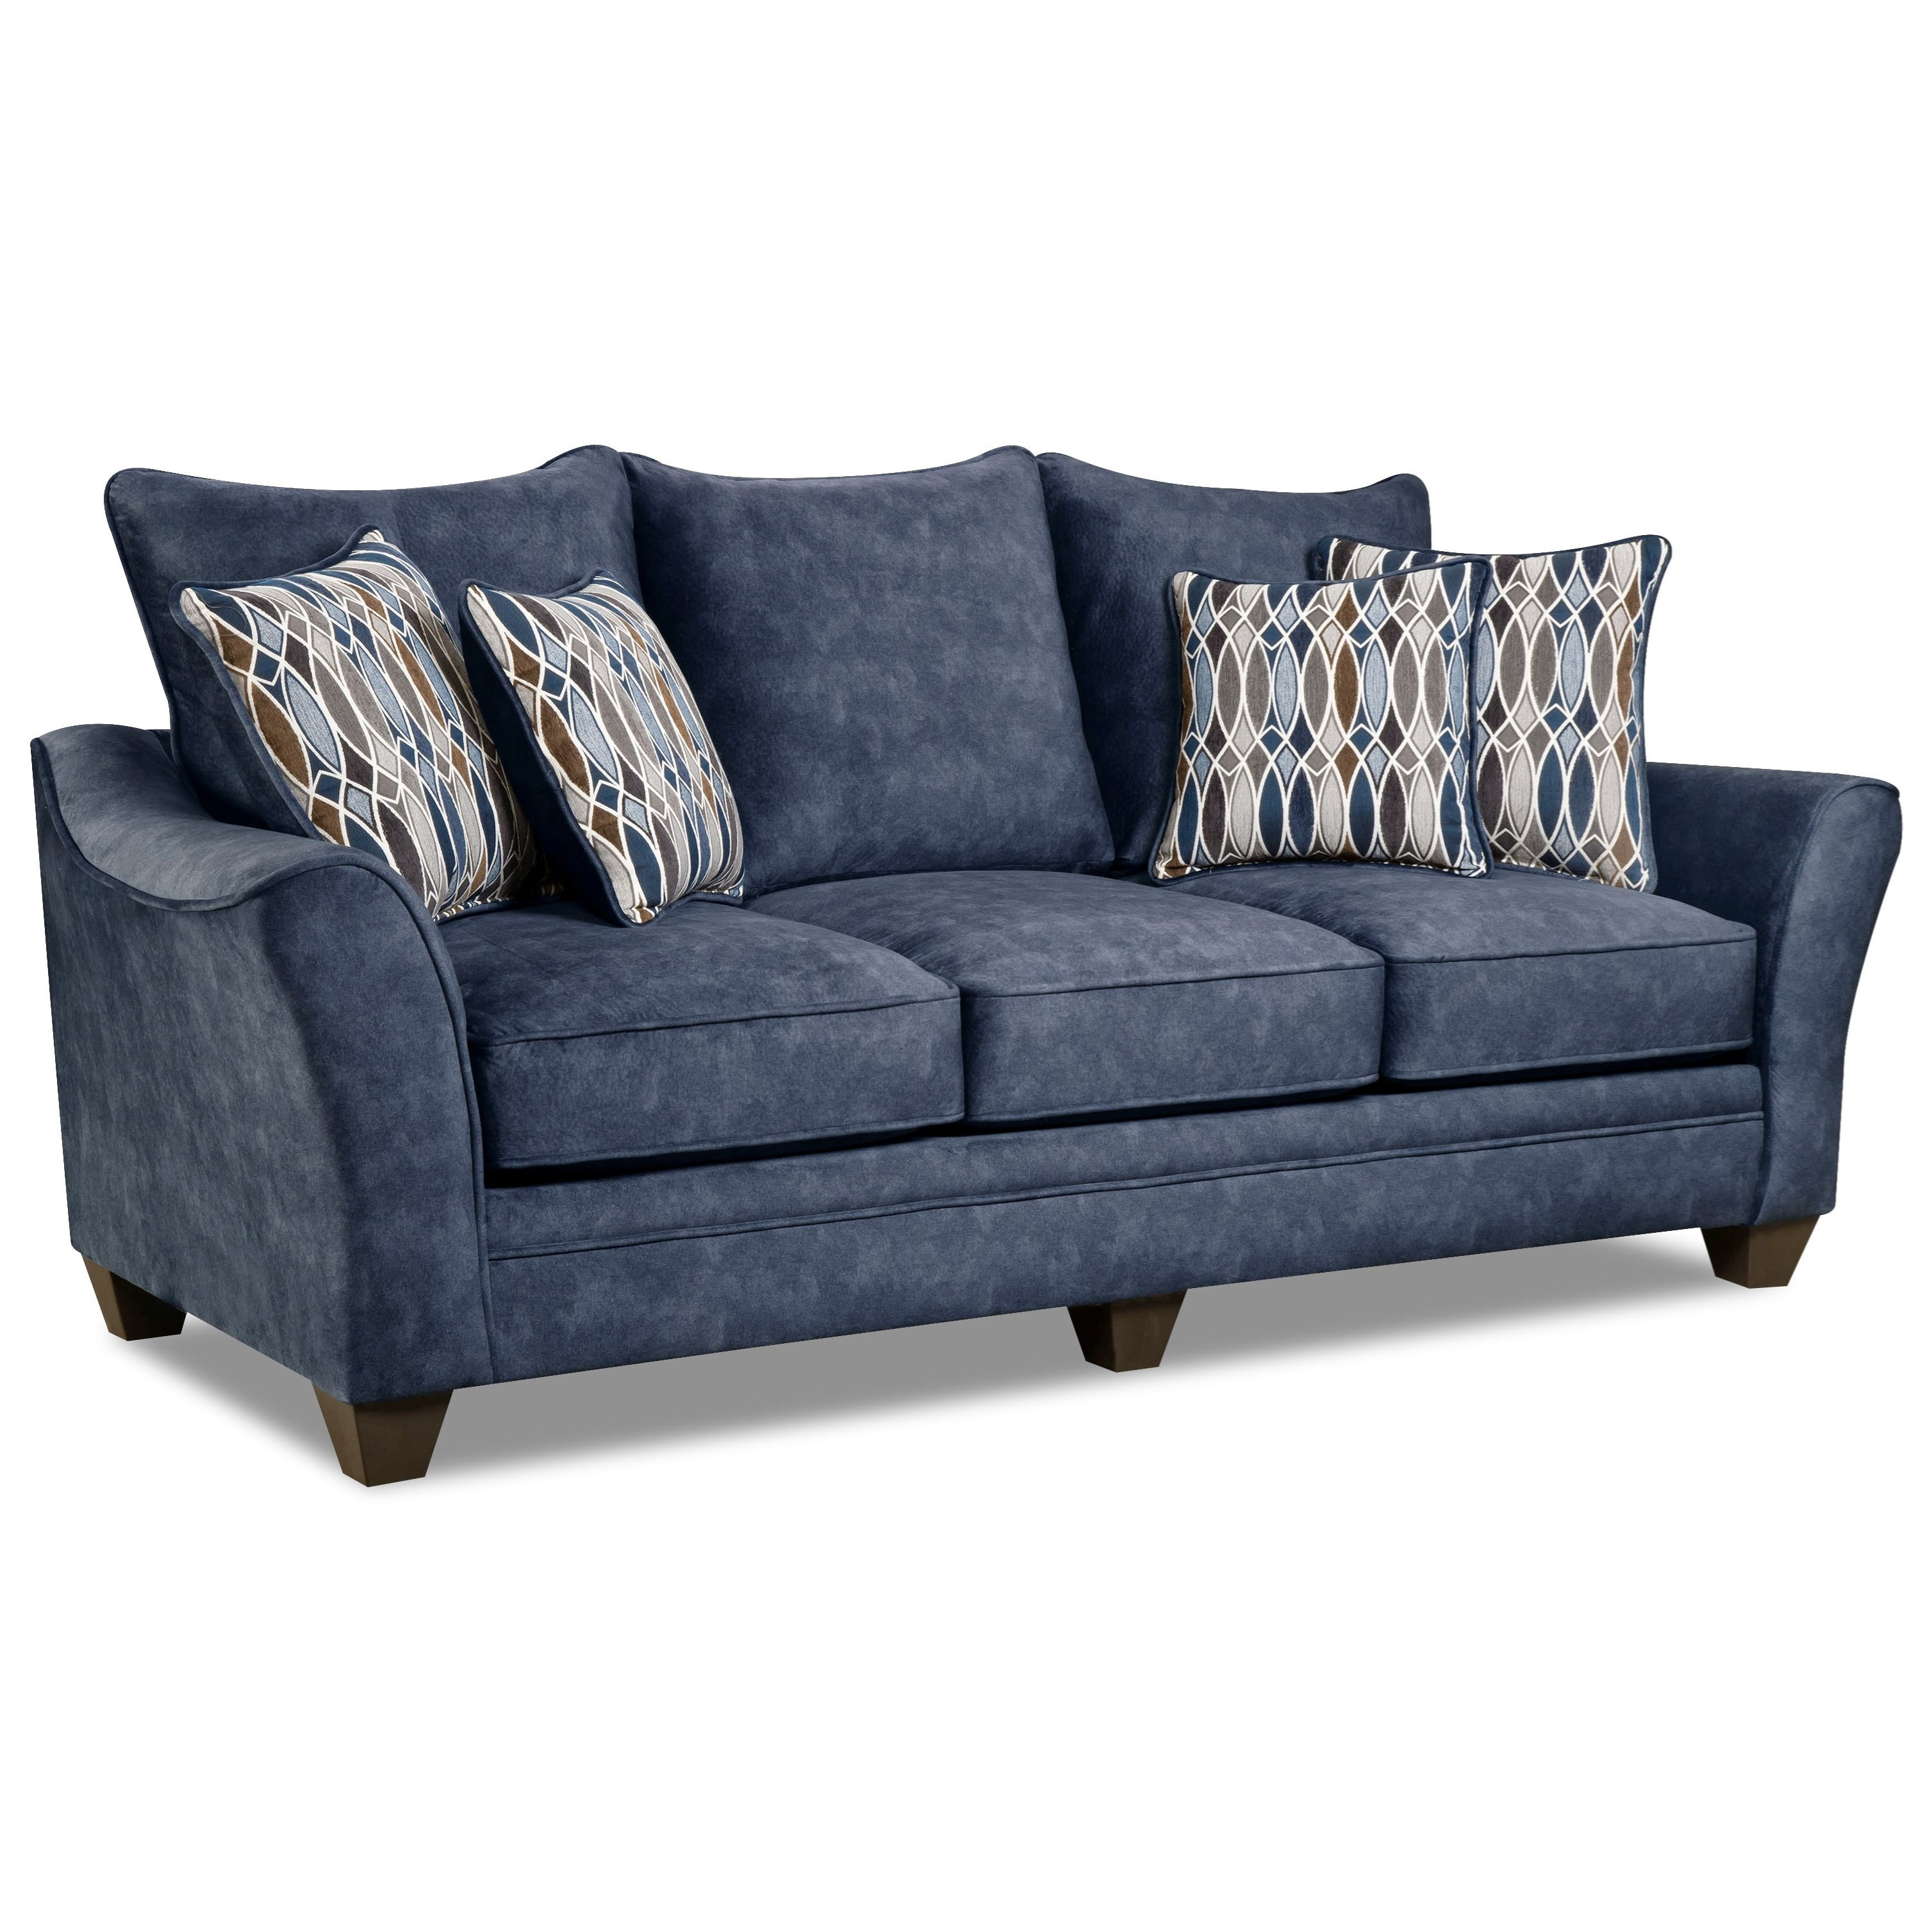 American Furniture 3850 Sofa - Item Number: 3853-Athena-Navy